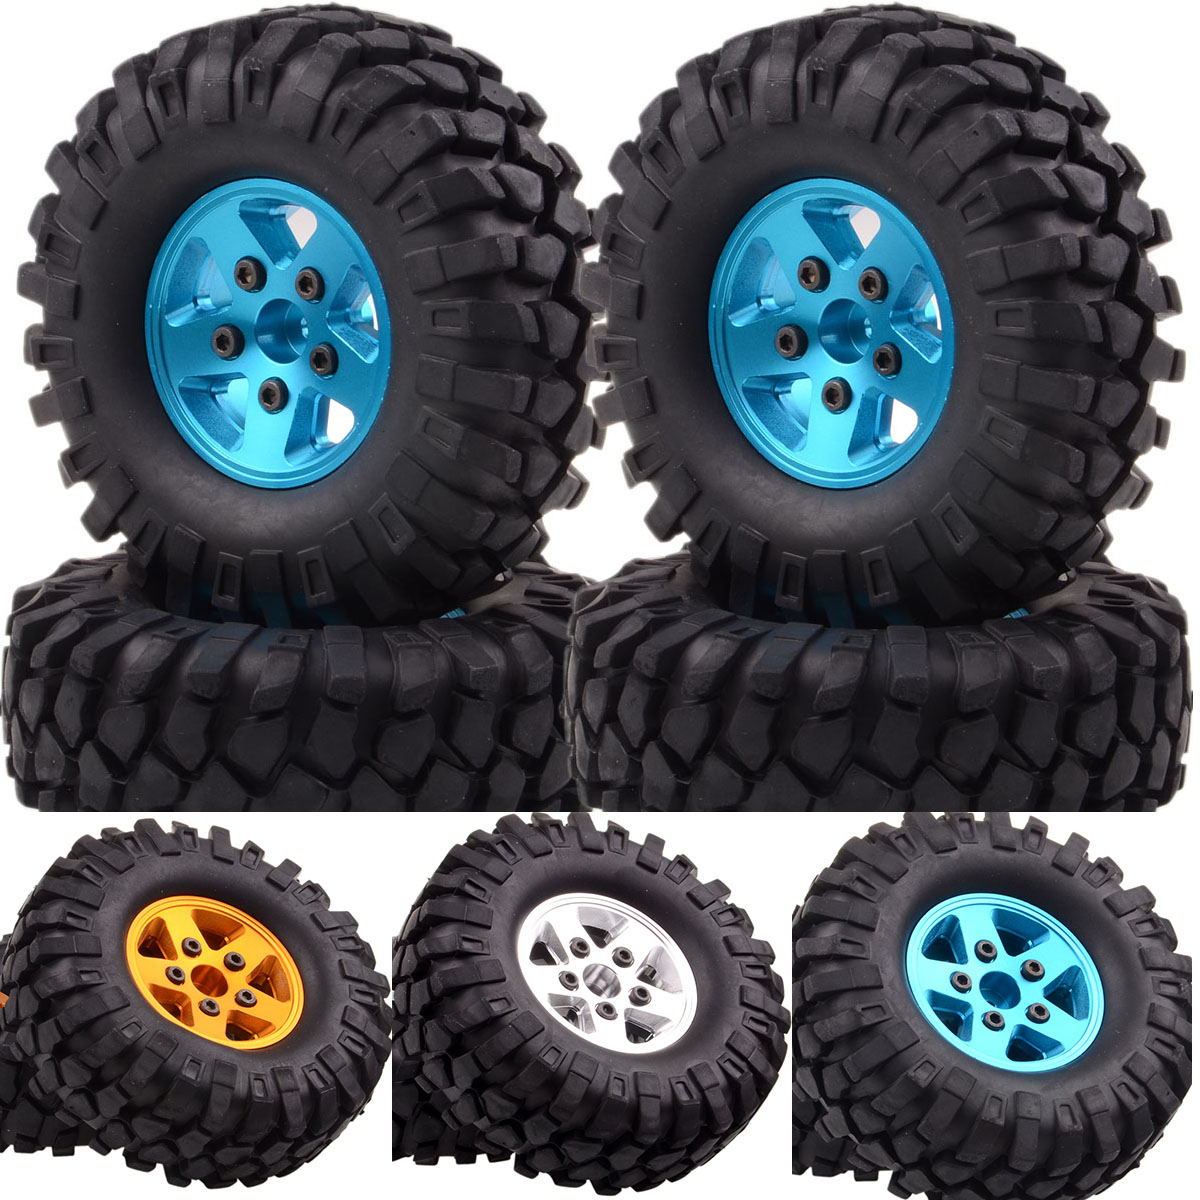 109-7032 4PCS 1.9 Metal Rock Crawler Wheel/Rim & Tyre 108MM For RC 1/10 Axial Tamiya HSP 1:10 free shipping 4pcs lot 1 9 inch wheels tire tyre for rc car model crawler tamiya cc01 f350 rc 4wd axial scx10t etc